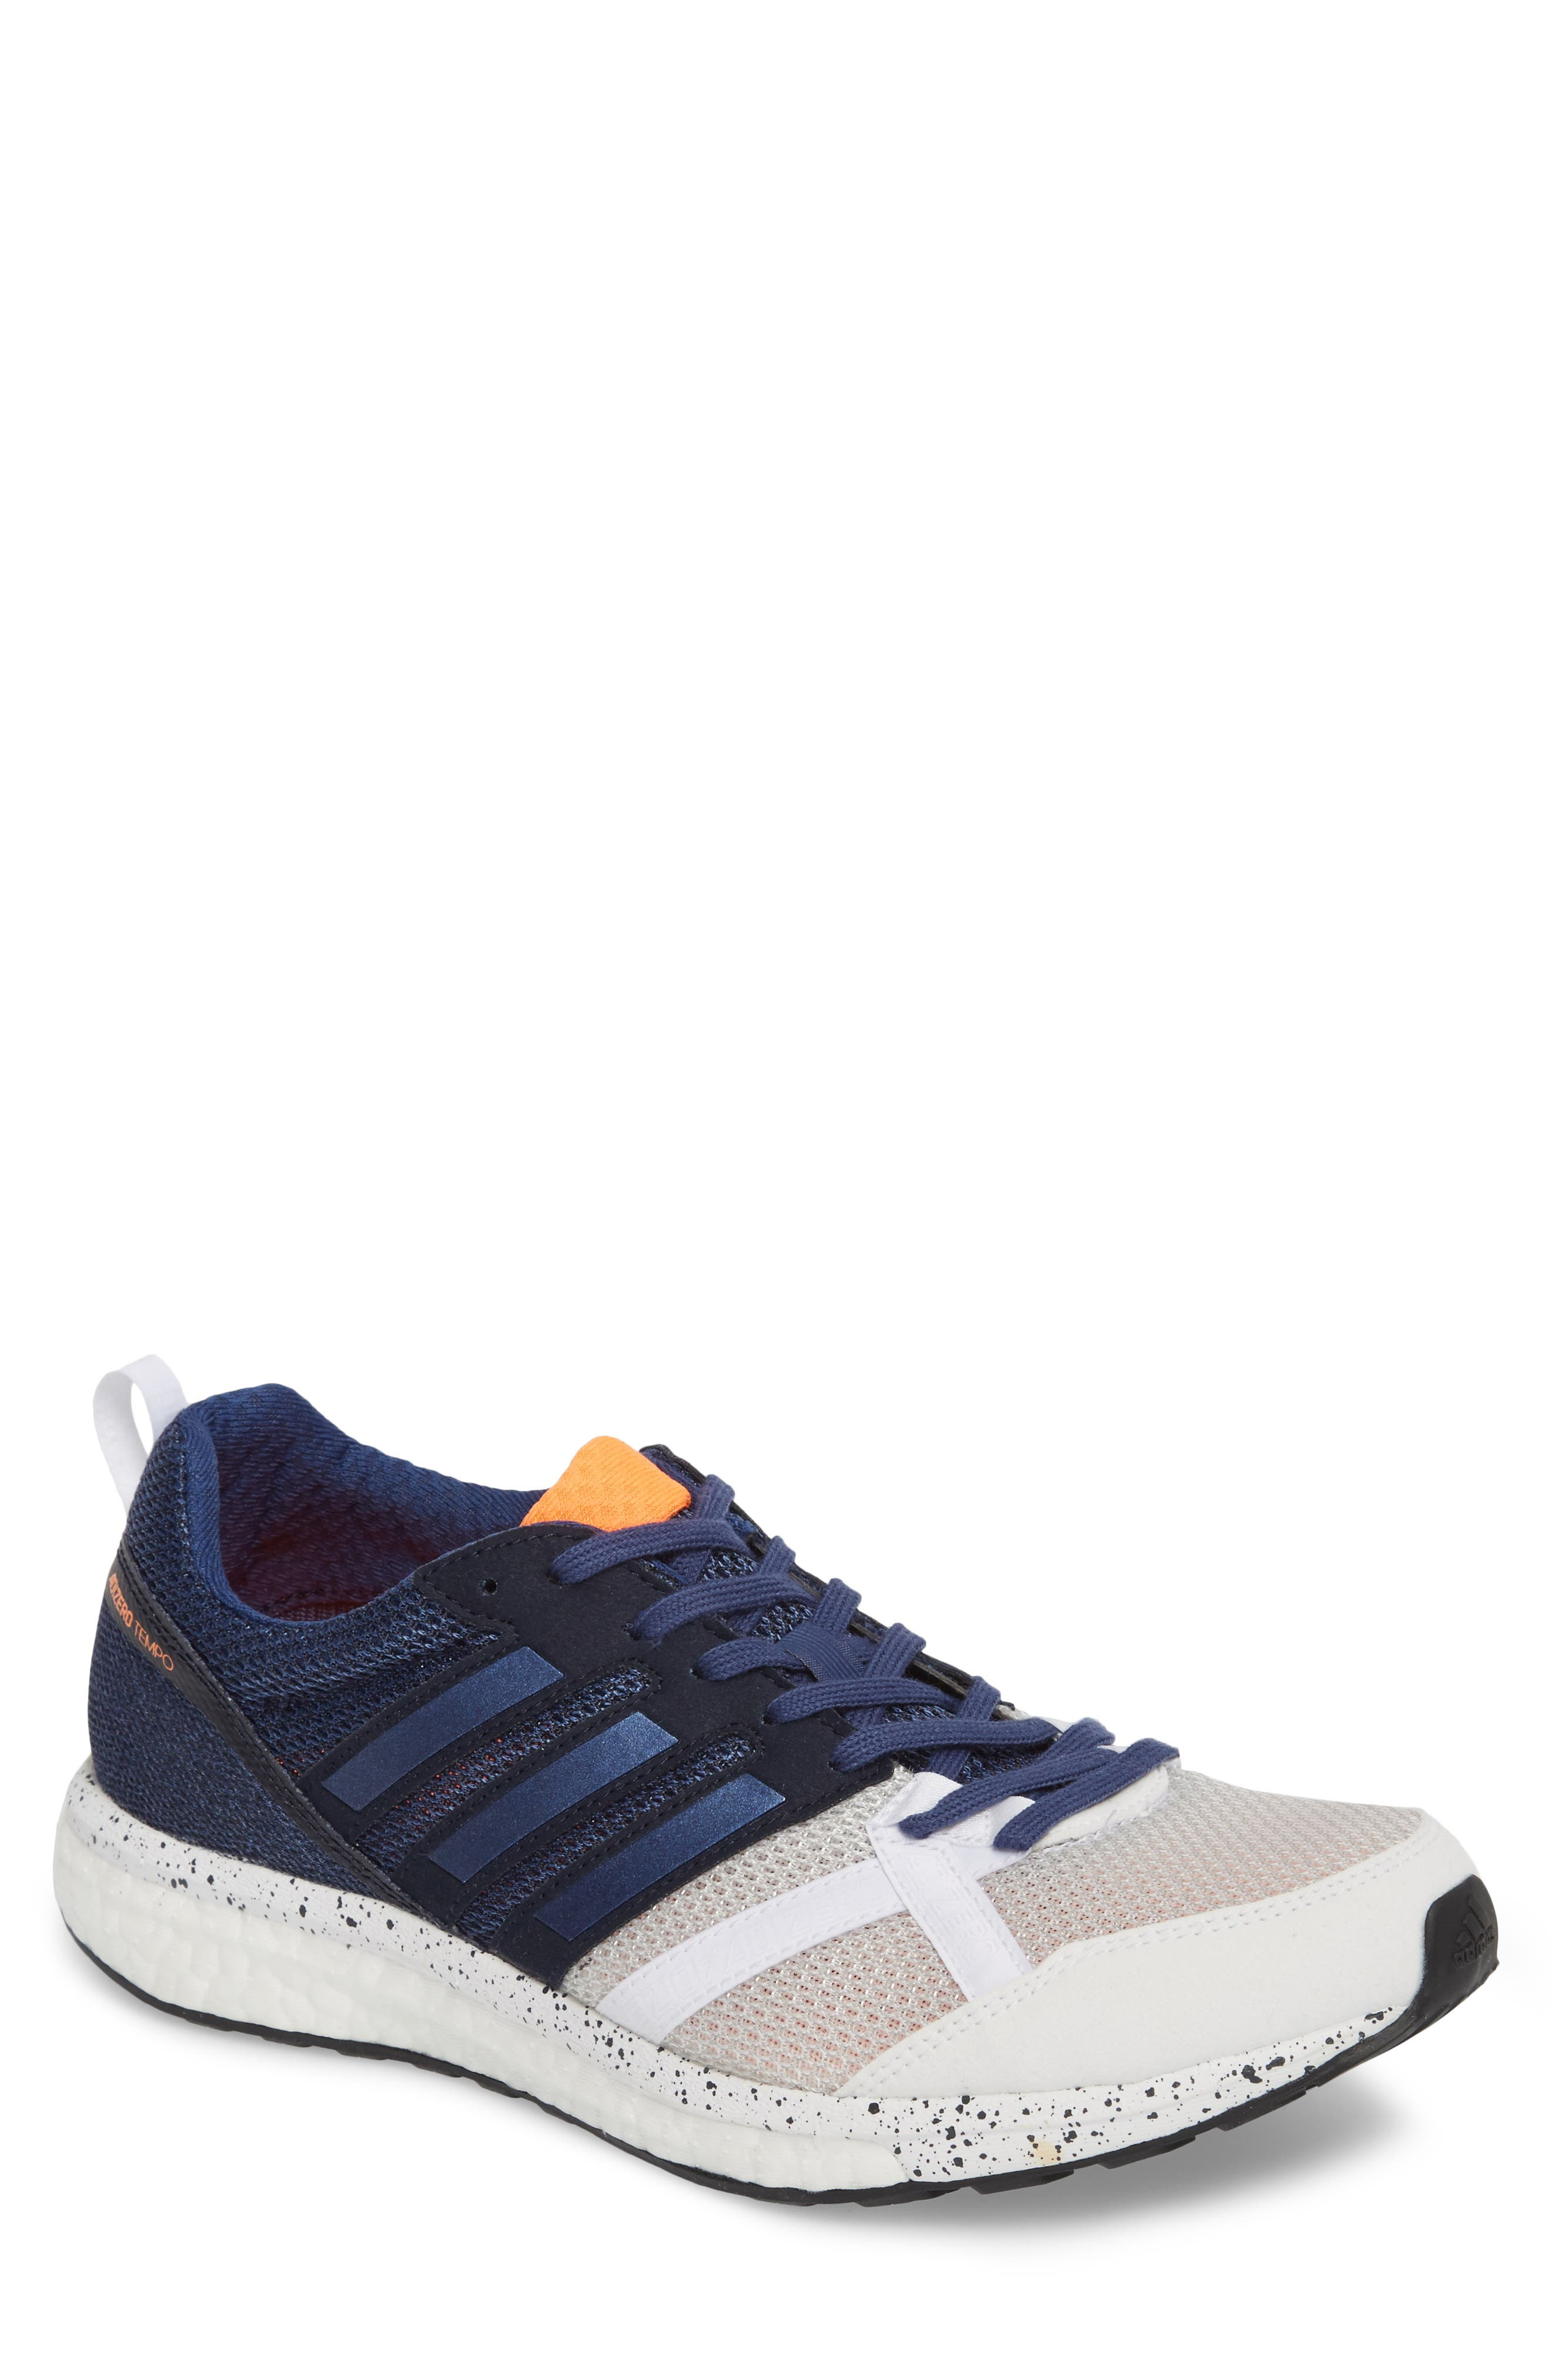 adidas Adizero Tempo 9 M Running Shoe (Men)